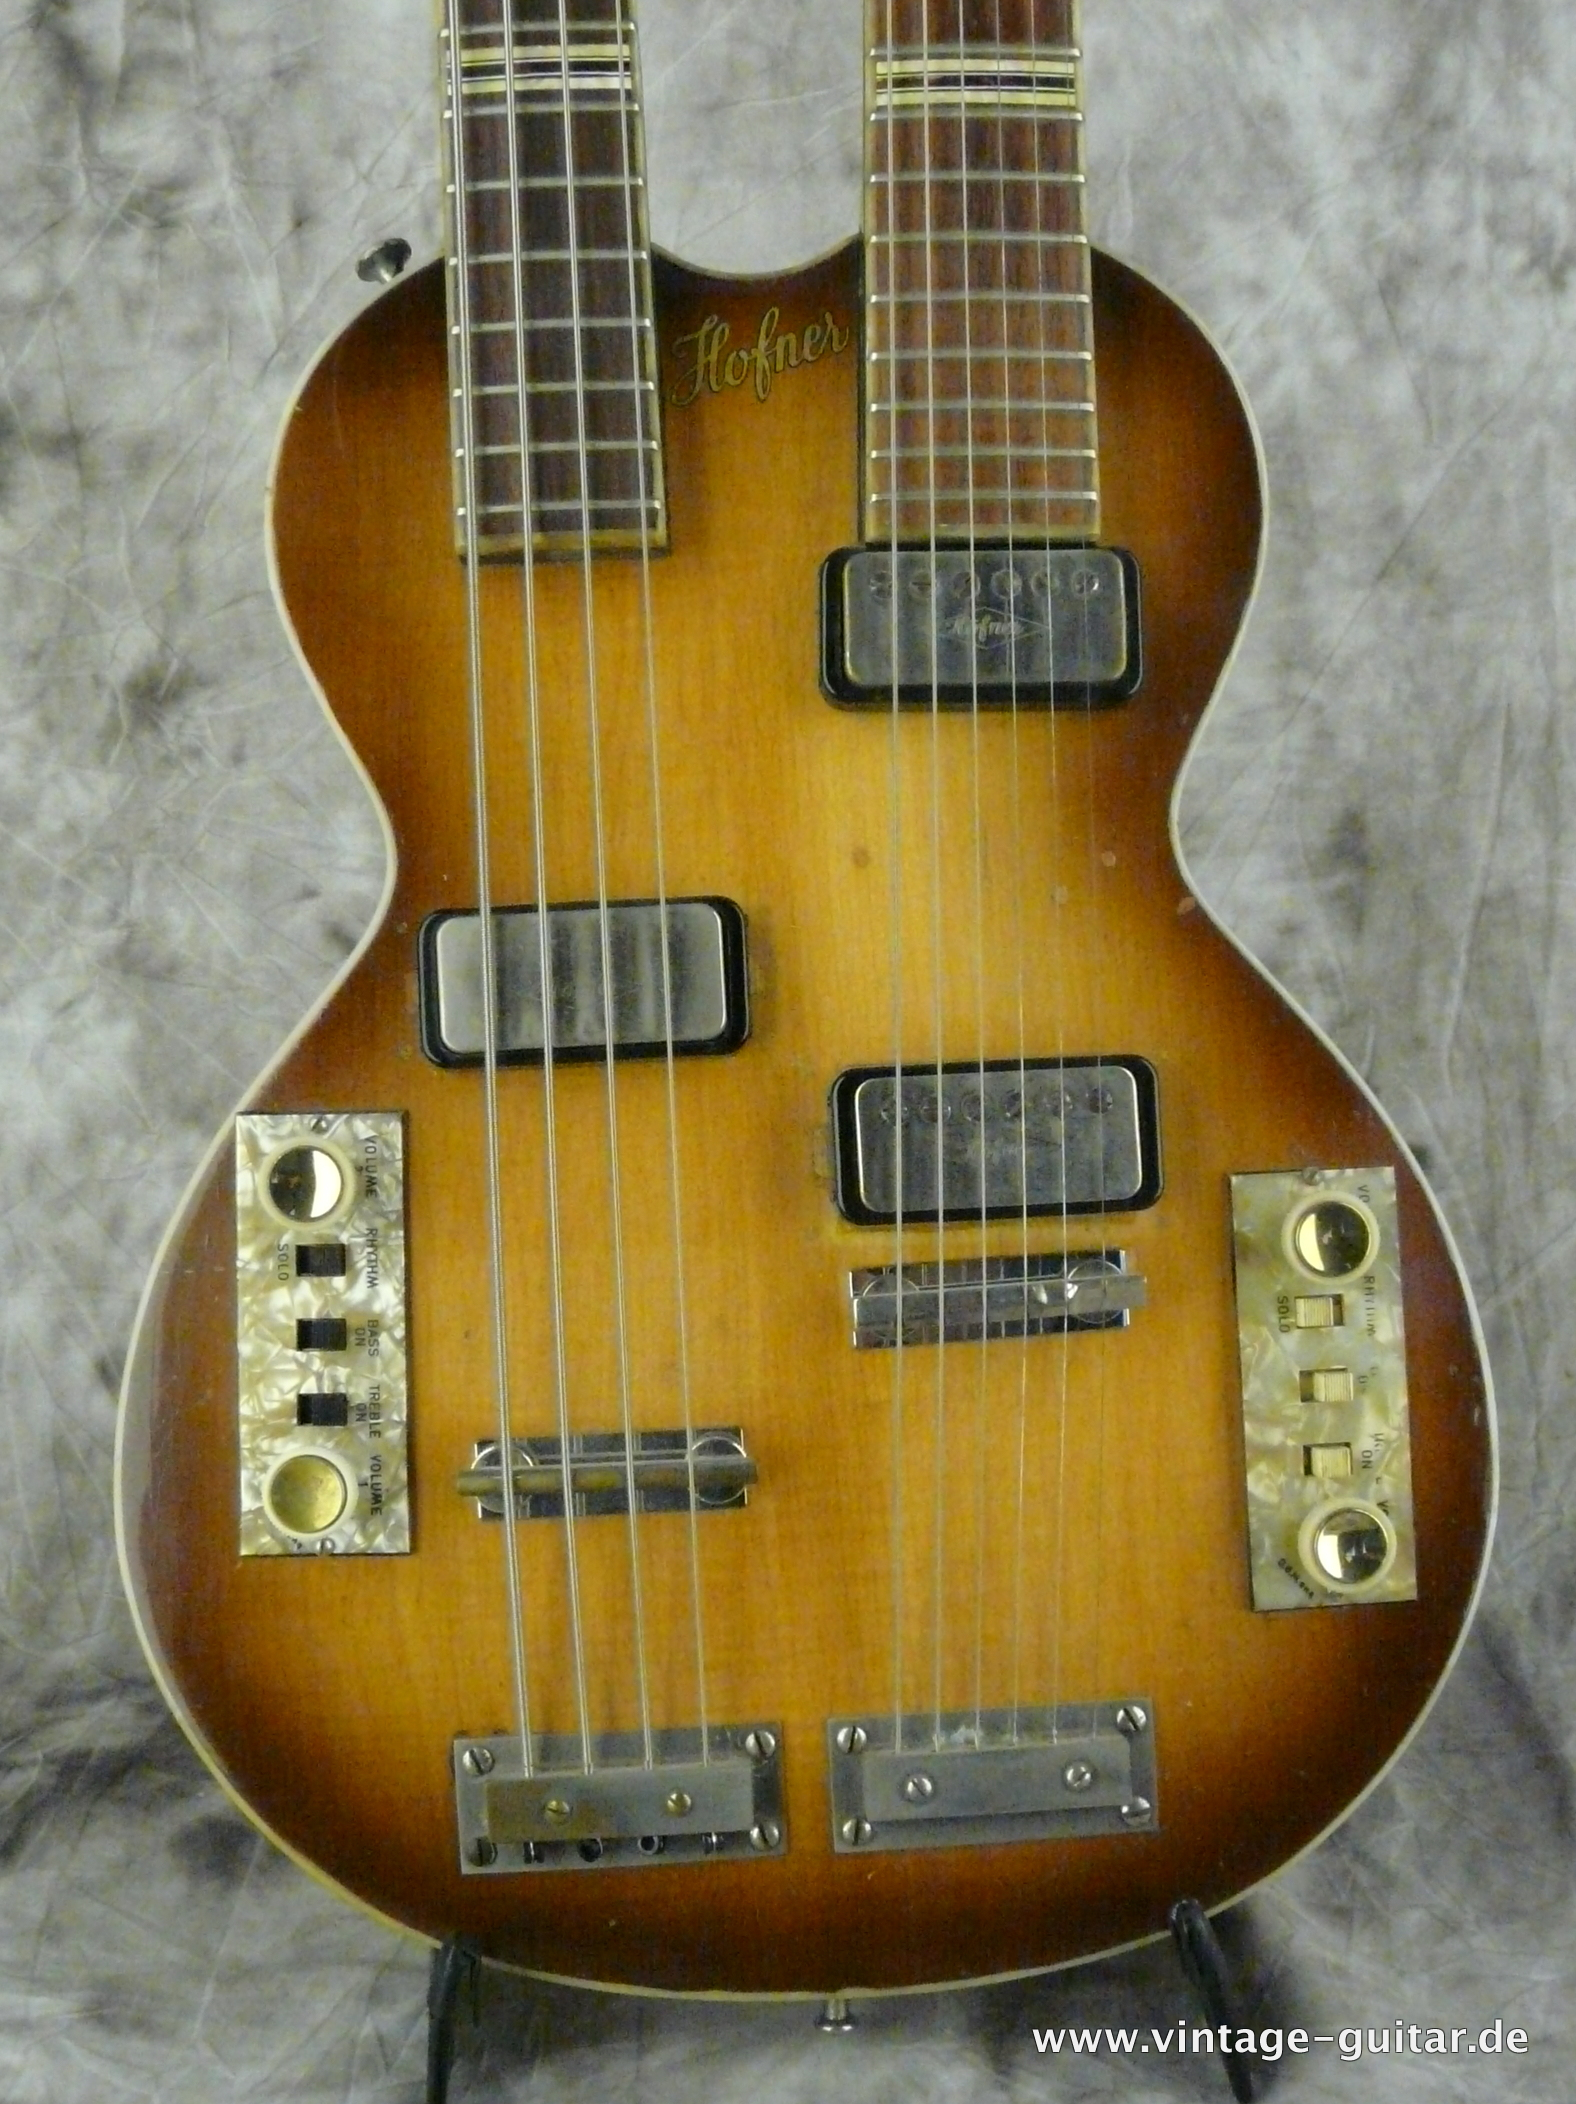 img/vintage/2648/Hofner-Double-Neck-Guitar-and-Bass-Model-191-002.JPG